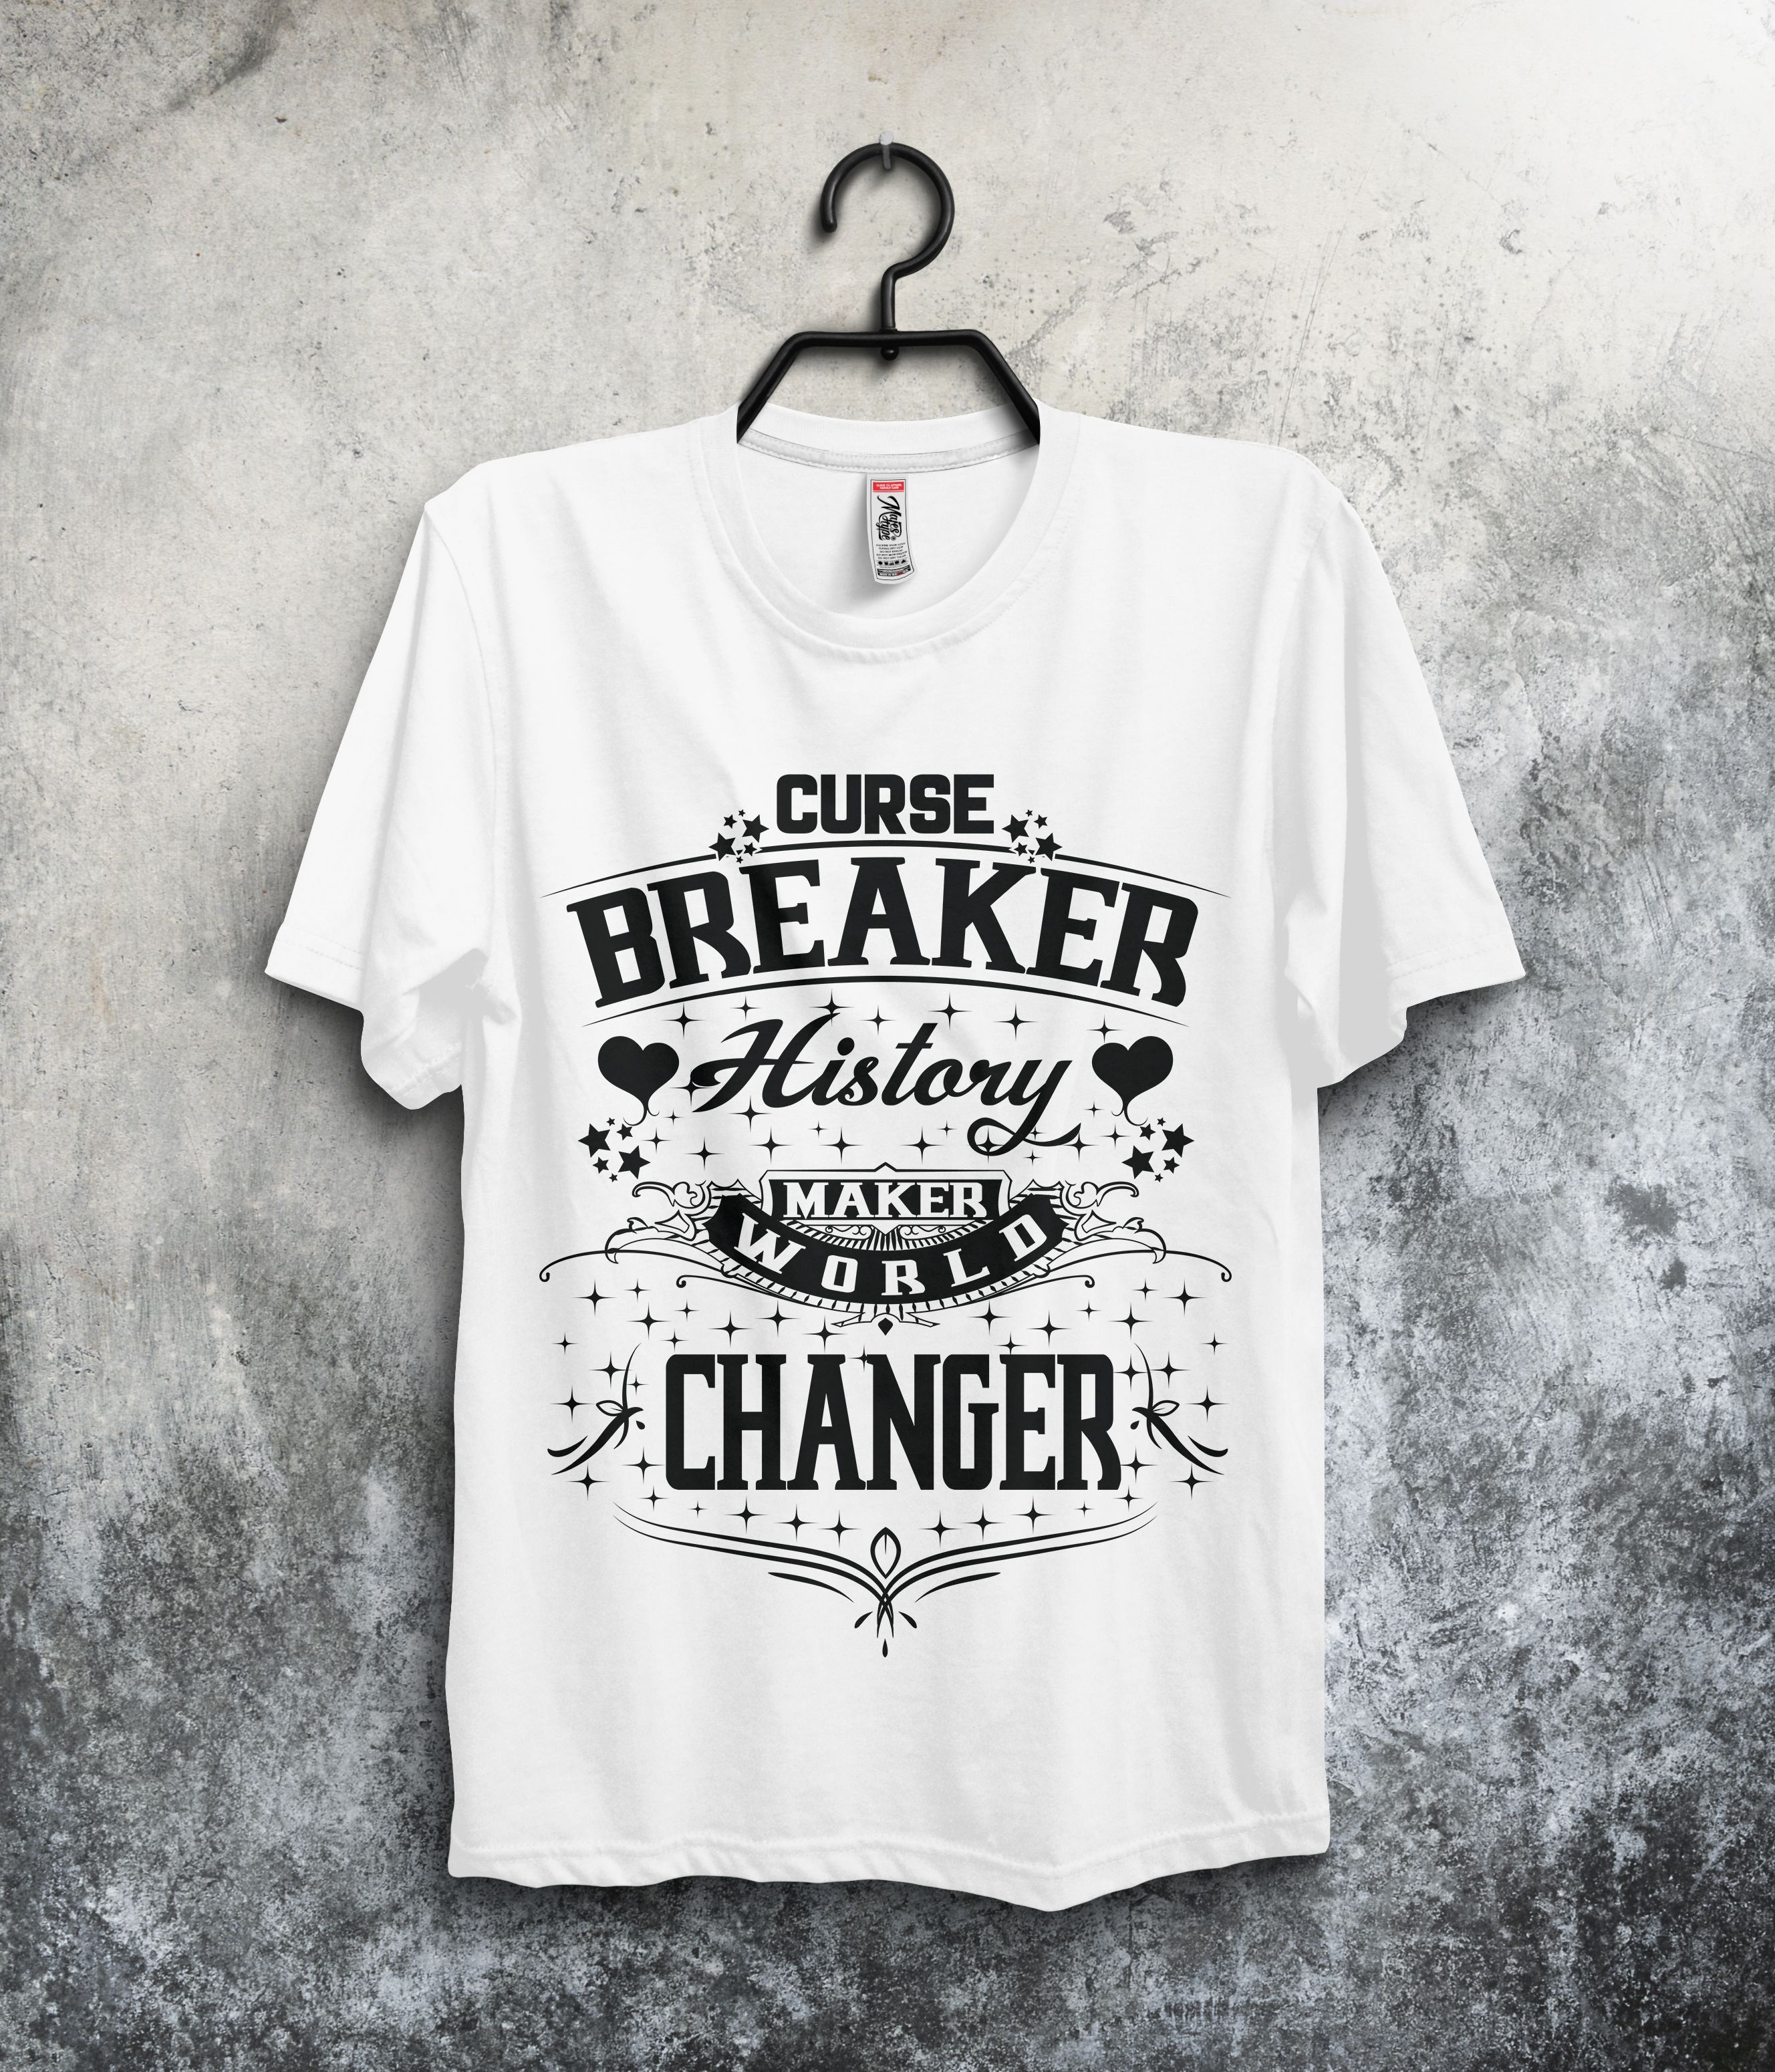 urse Breaker T-Shirt for Christain Women BONUS: When you purchase this tee you will also receive FREE Bonus Gifts #T-Shirts for Women #teesChristain #T-shirtsChristain #funnywomens #womenshirts